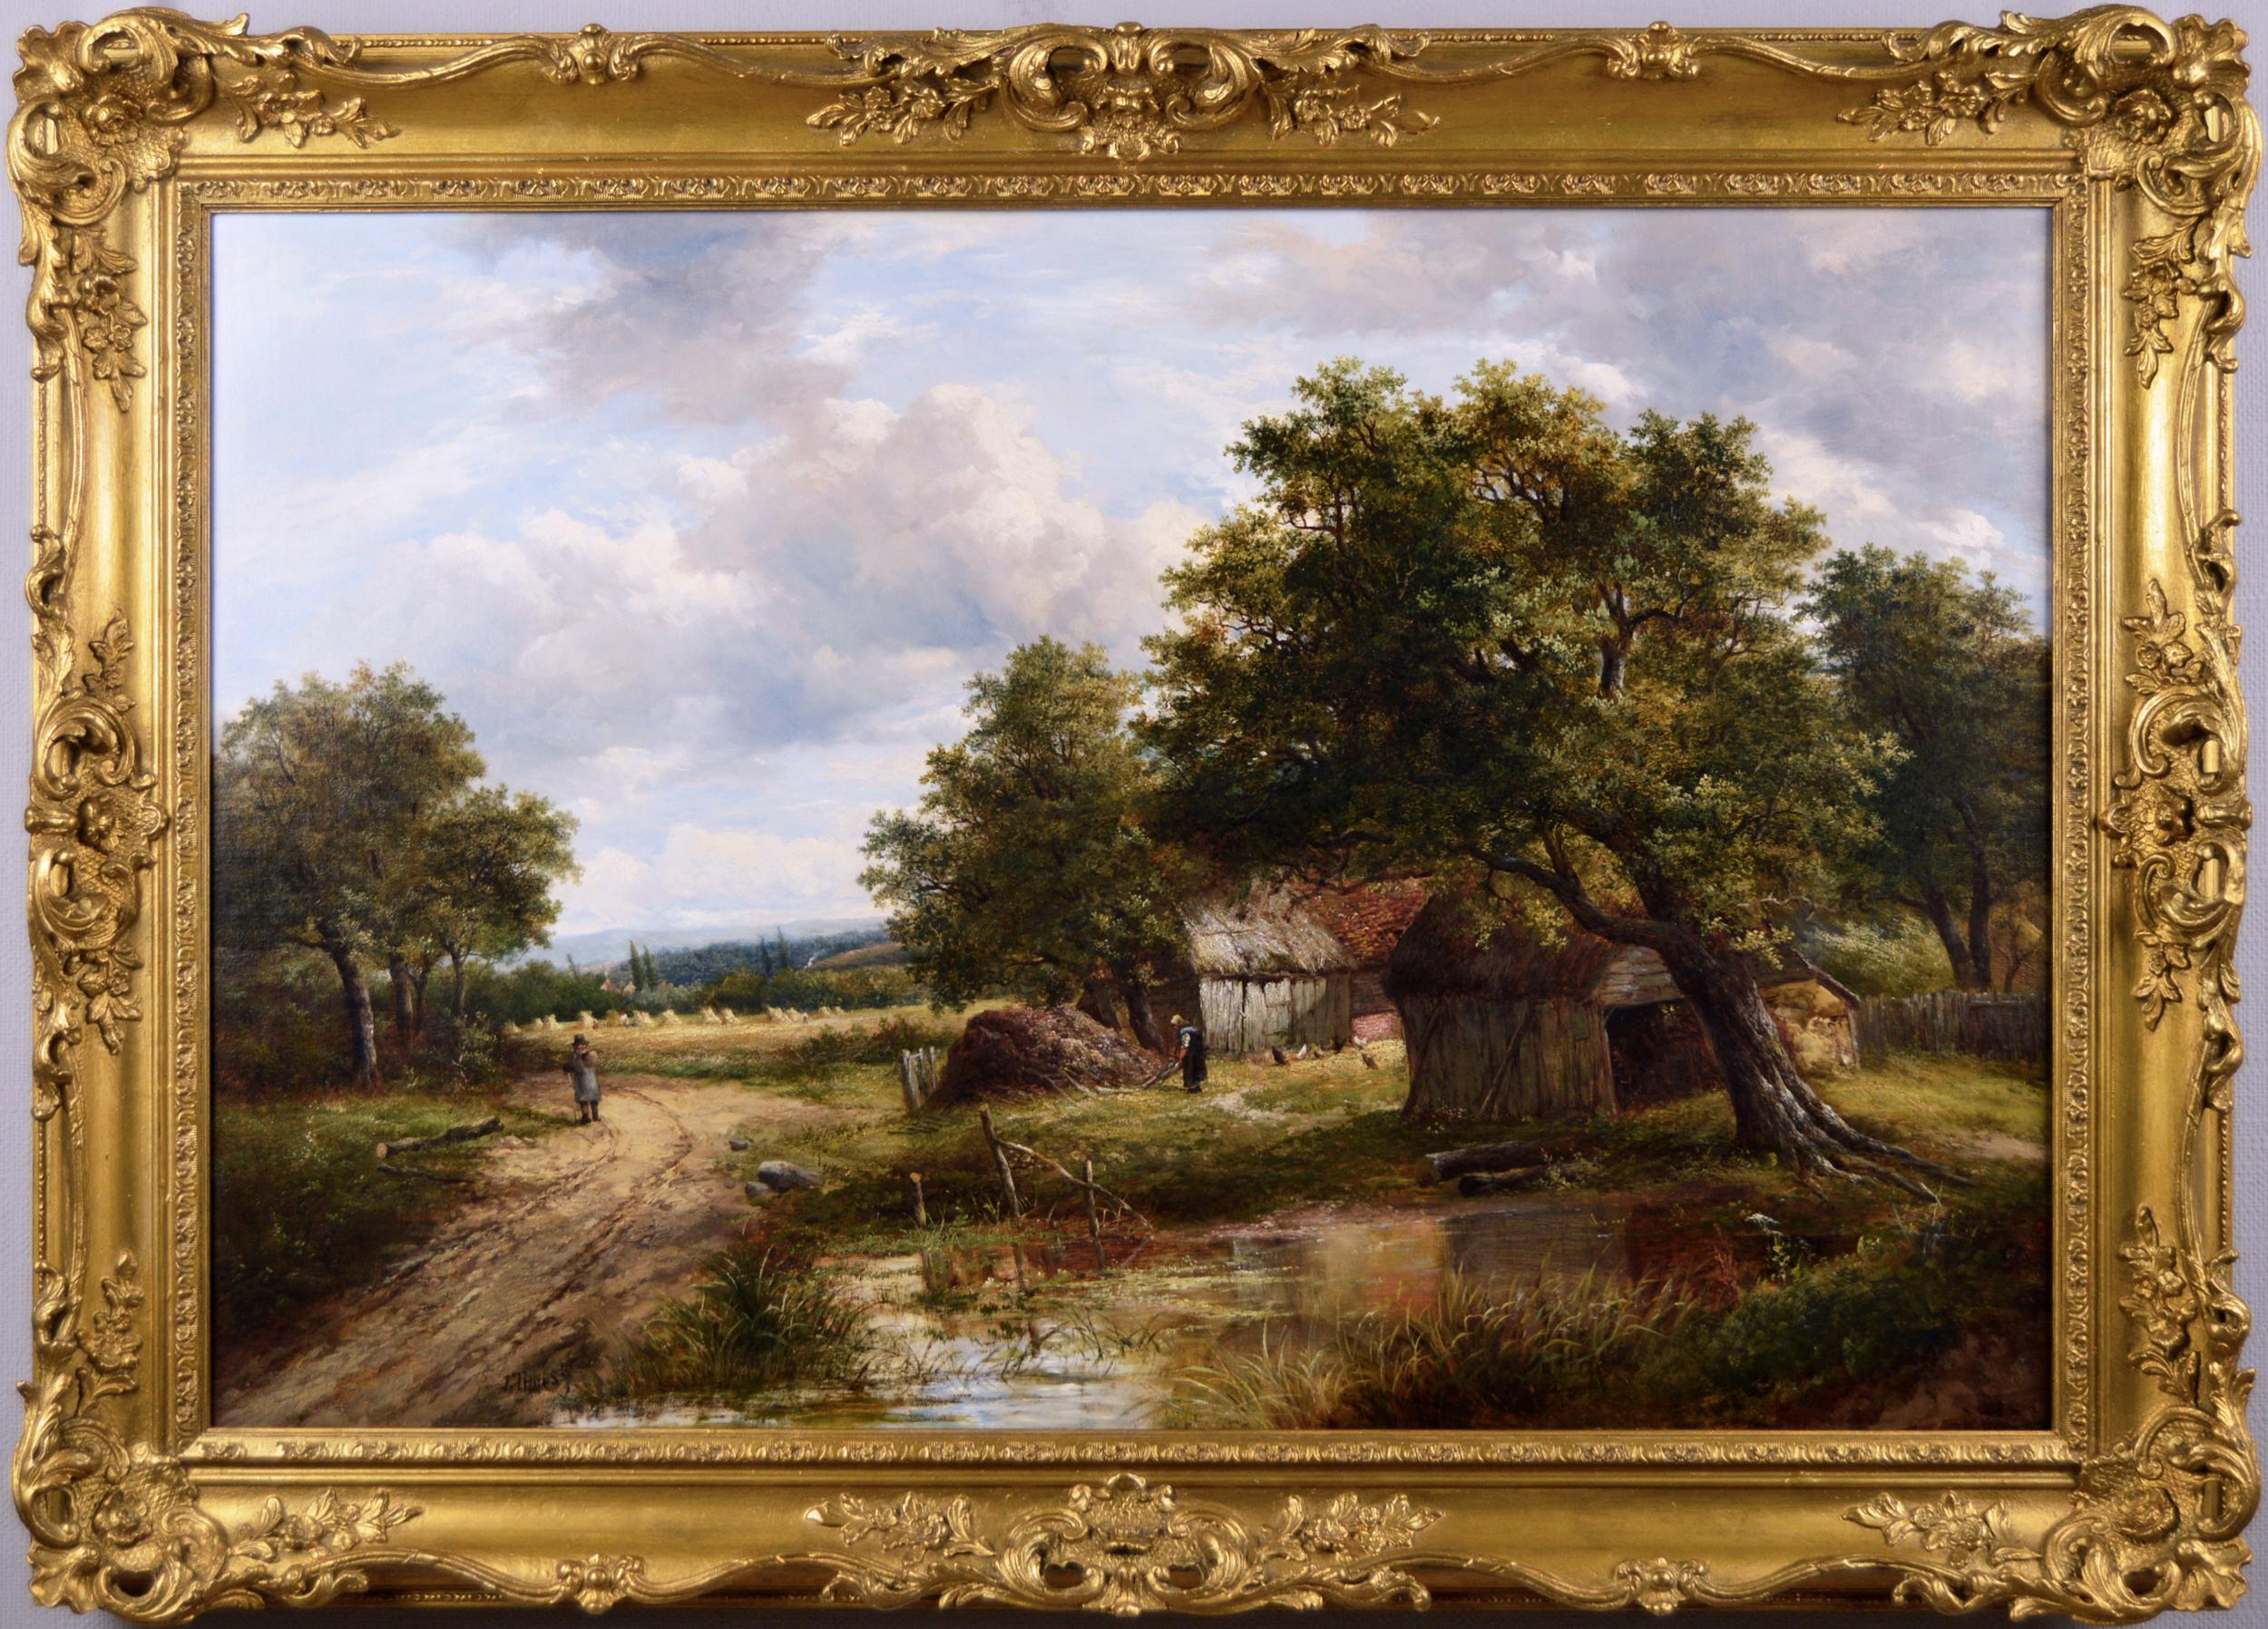 19th Century landscape oil painting of a barn near a cornfield